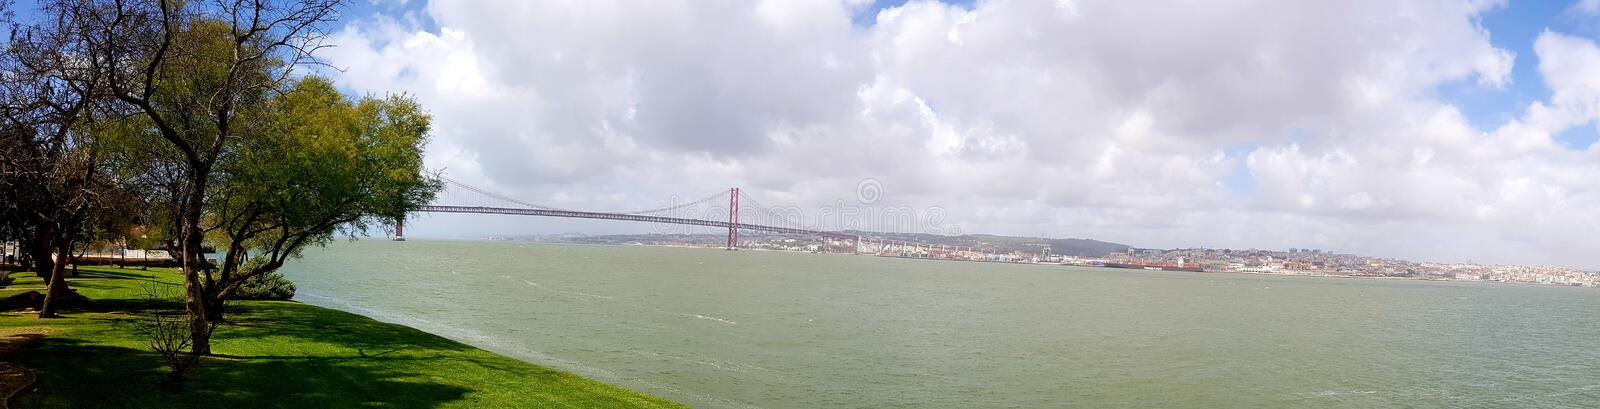 25th April Bridge in Lisbon stock photo